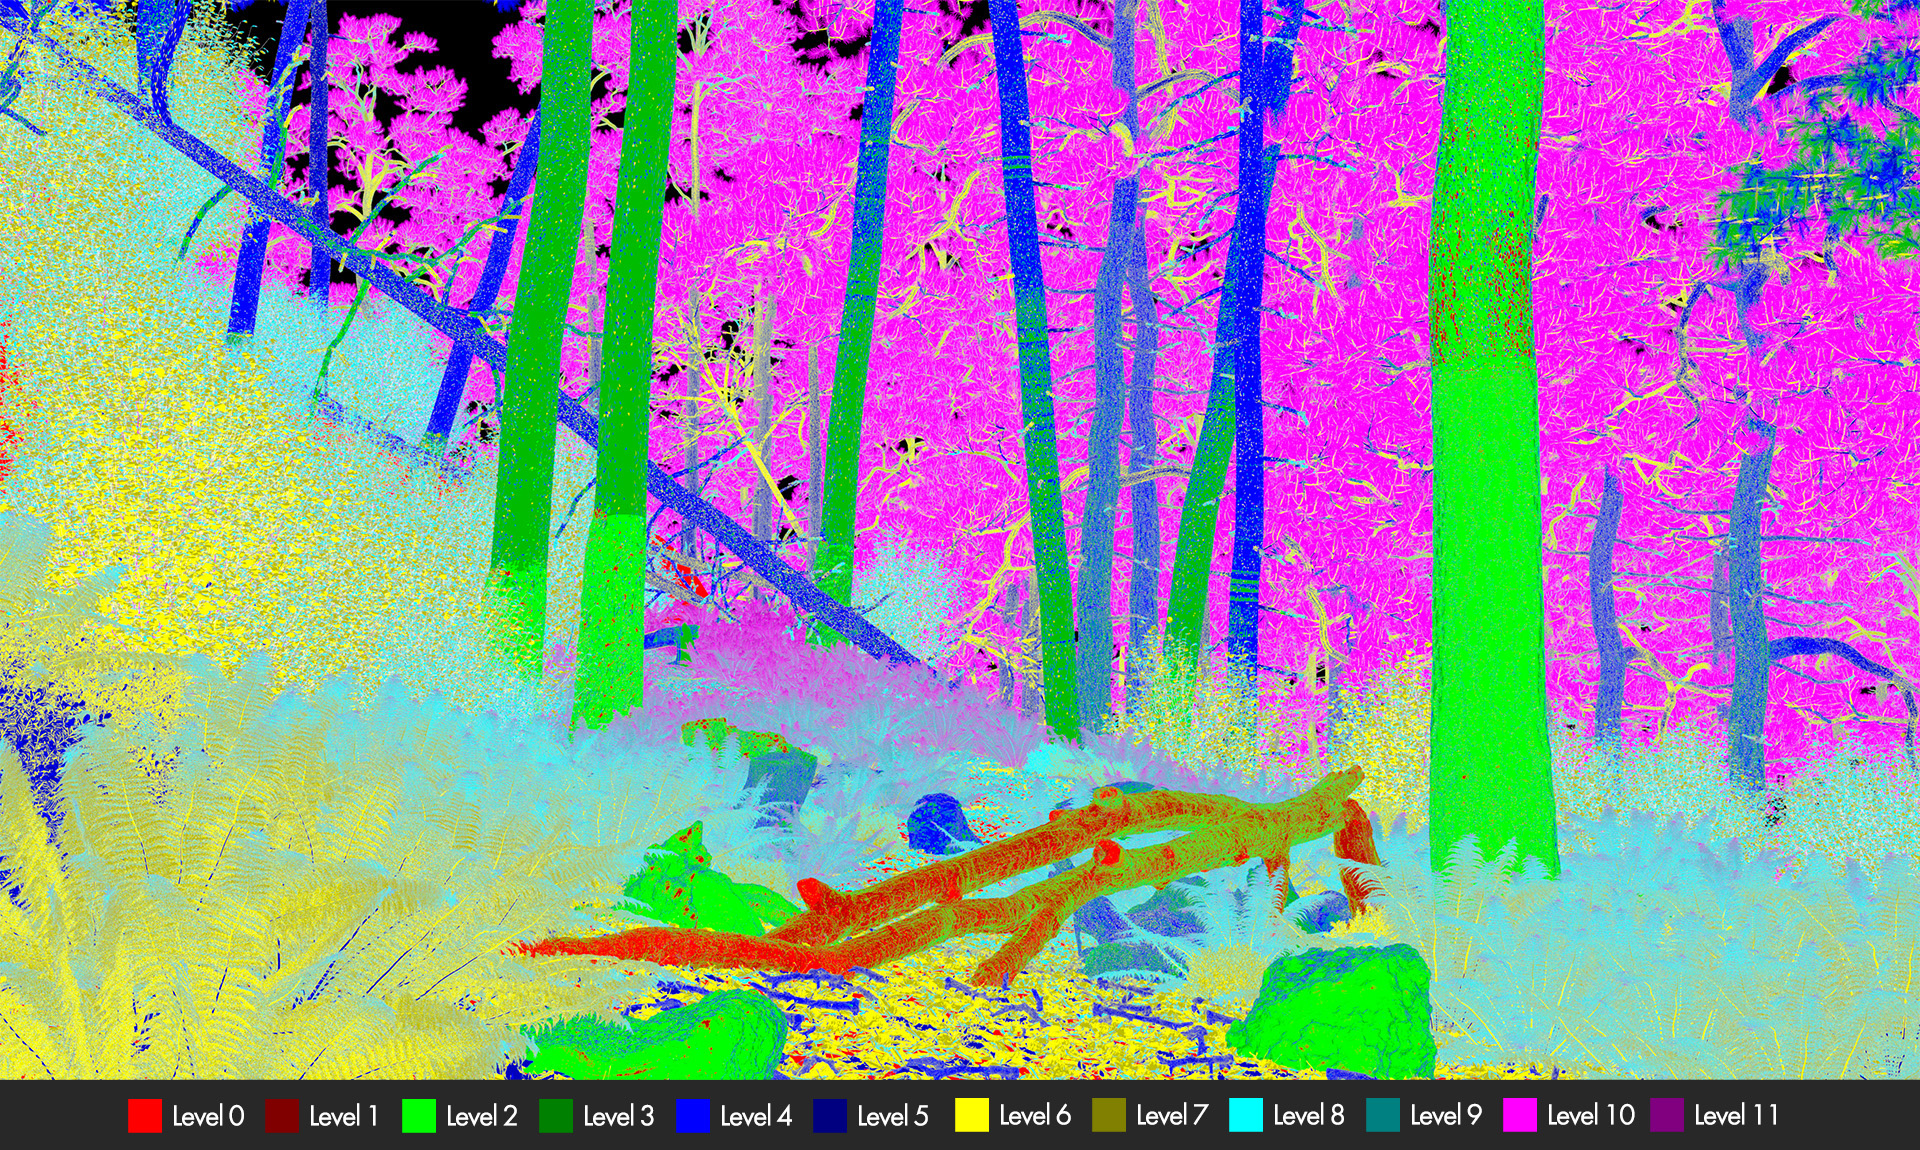 Figure 4: Mipmap levels accessed for the forest scene from Figure 2, rendered at 3840x2160 resolution. Note how since the render is higher resolution and therefore pixel footprints are smaller for the same field of view, lower mipmap levels are accessed more frequently compared to Figure 3.